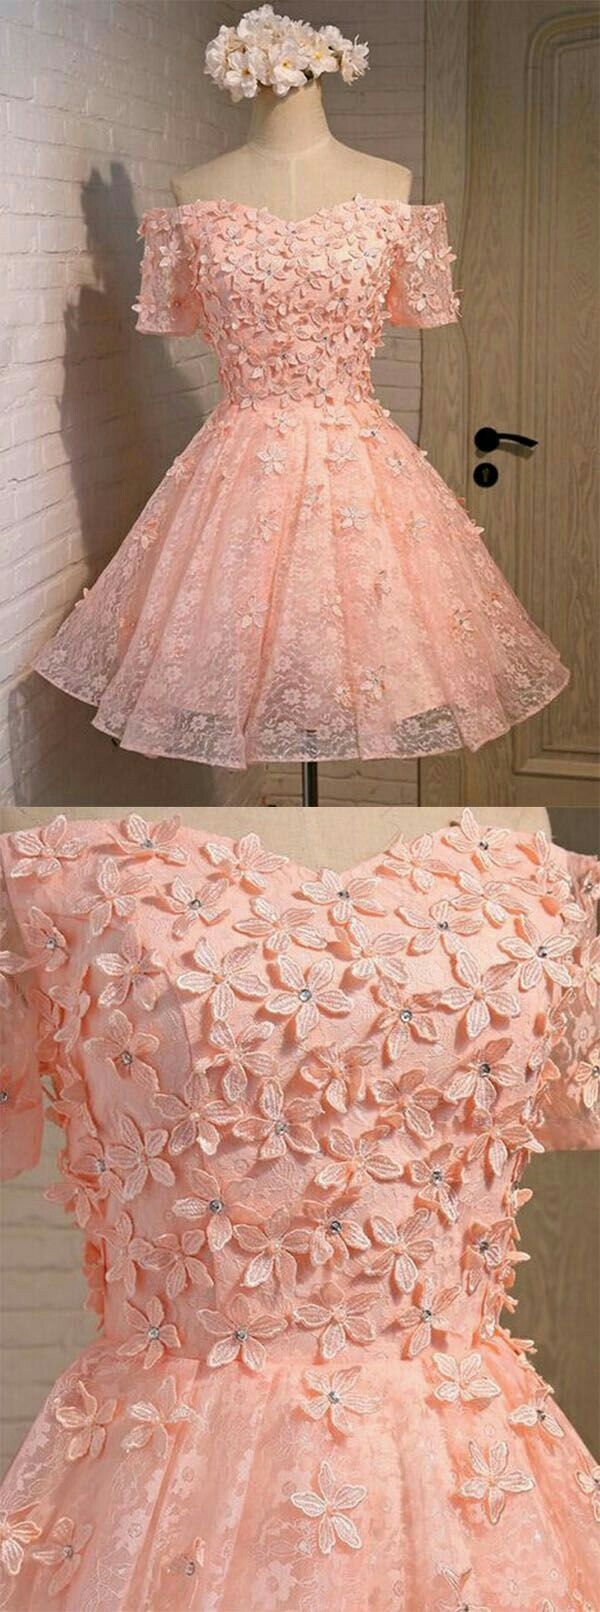 Pin by sisrs on short prom dress pinterest semi formal dresses